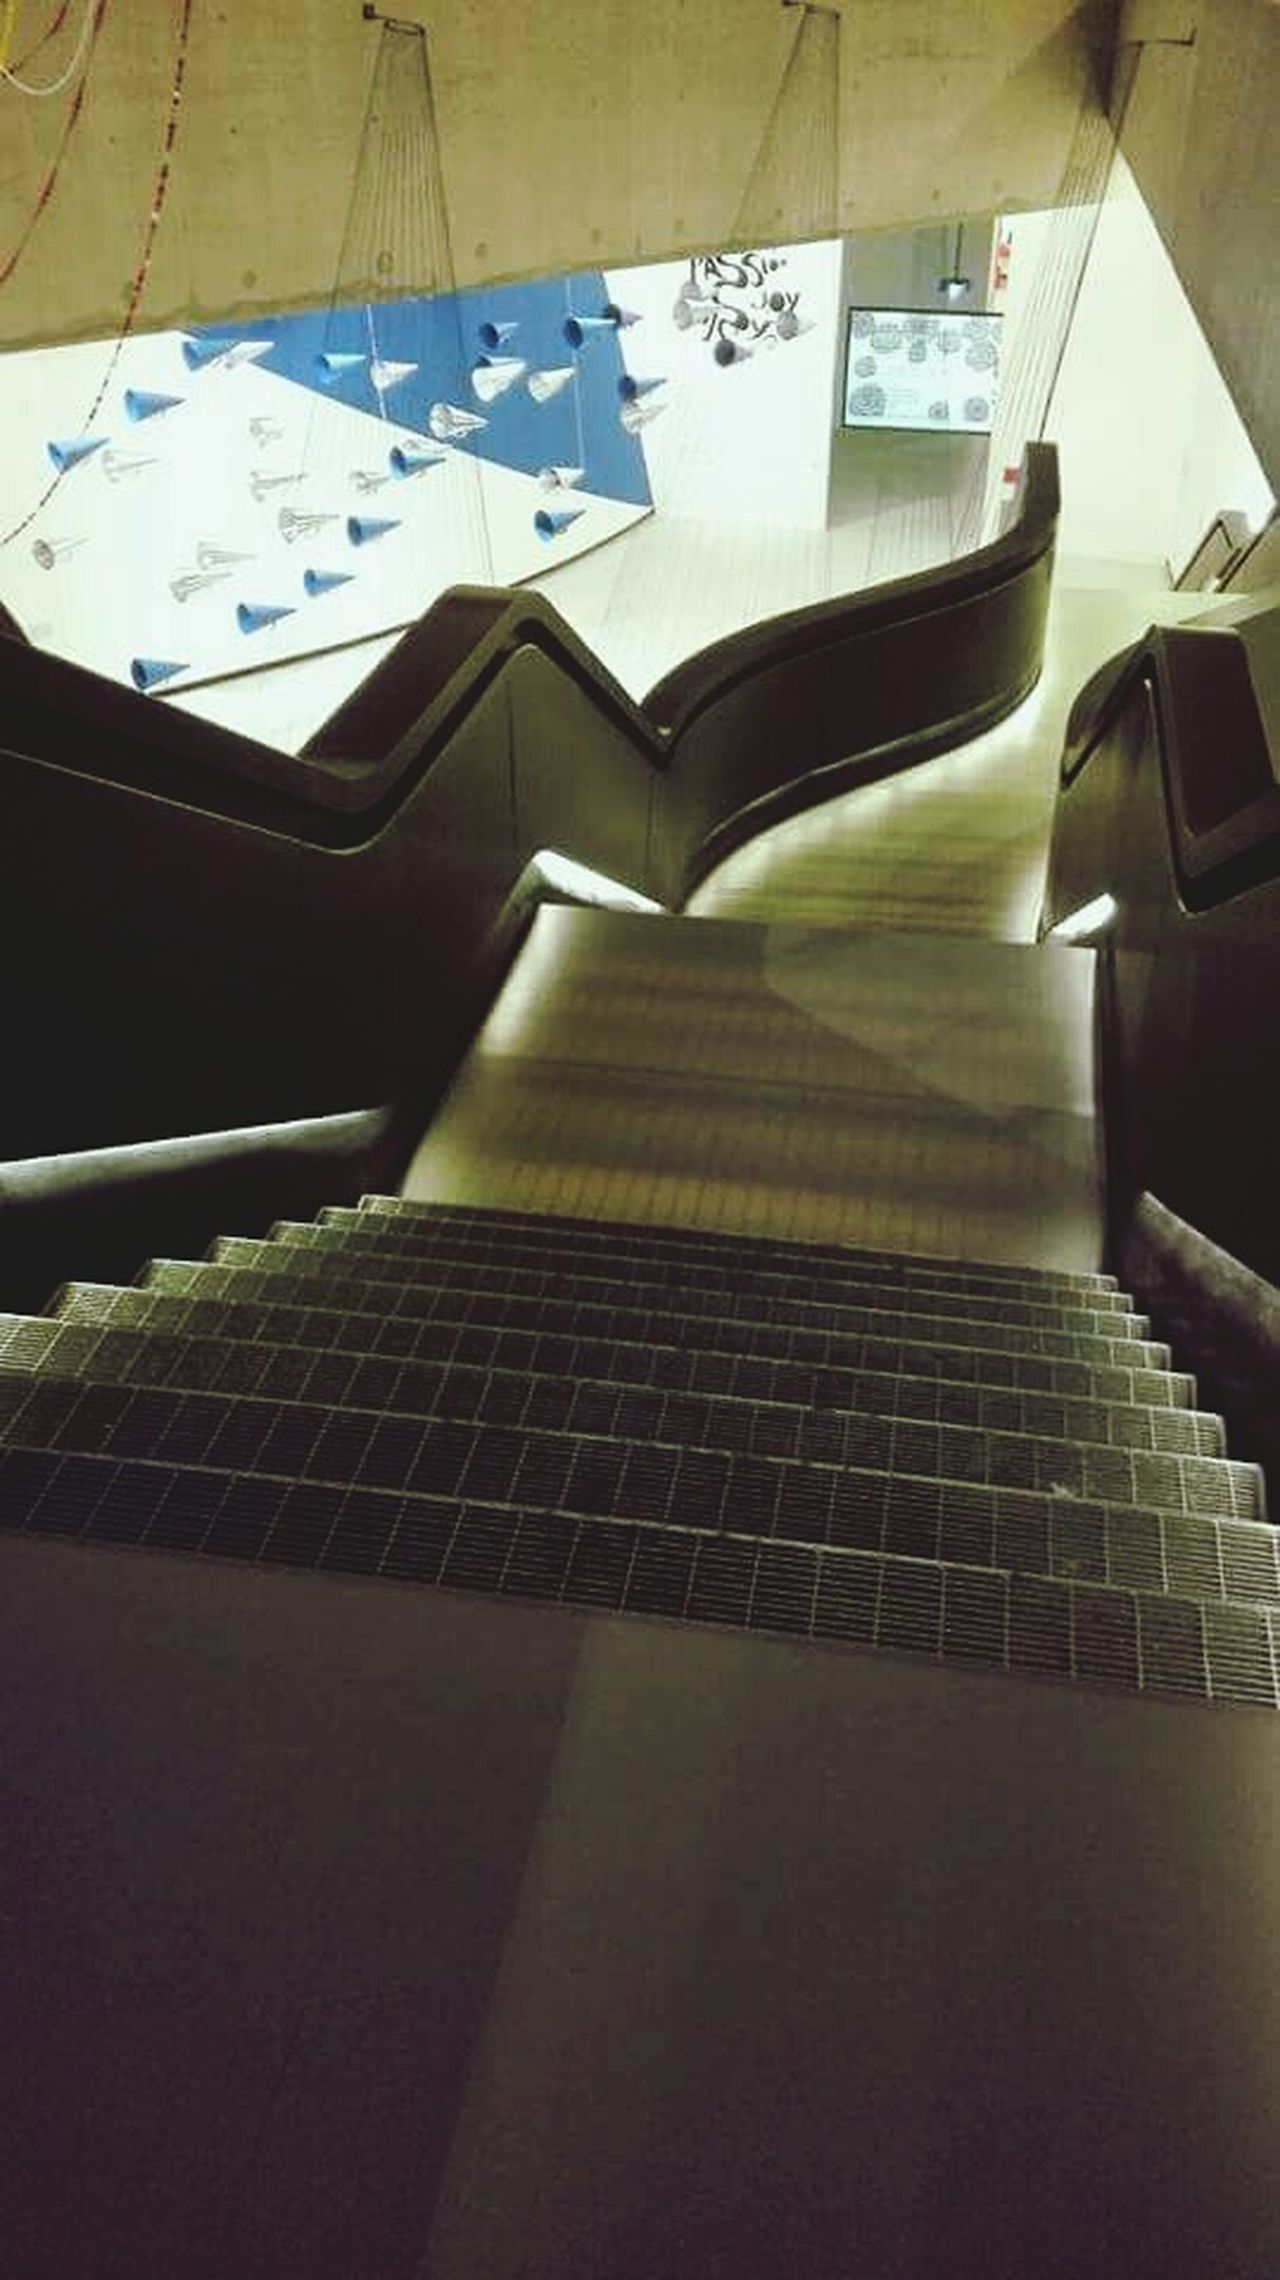 Zaha Hadid Zaha Hadid's Project MAXXI MAXXI Roma Roma Italy Museum Museum Of Modern Art Woman Who Inspire You Art Waves Lines And Shapes Stairs Minimalism Concept Silence Architecture Architectural Feature Contemporary Art Inside Design Electric Light ArtWork